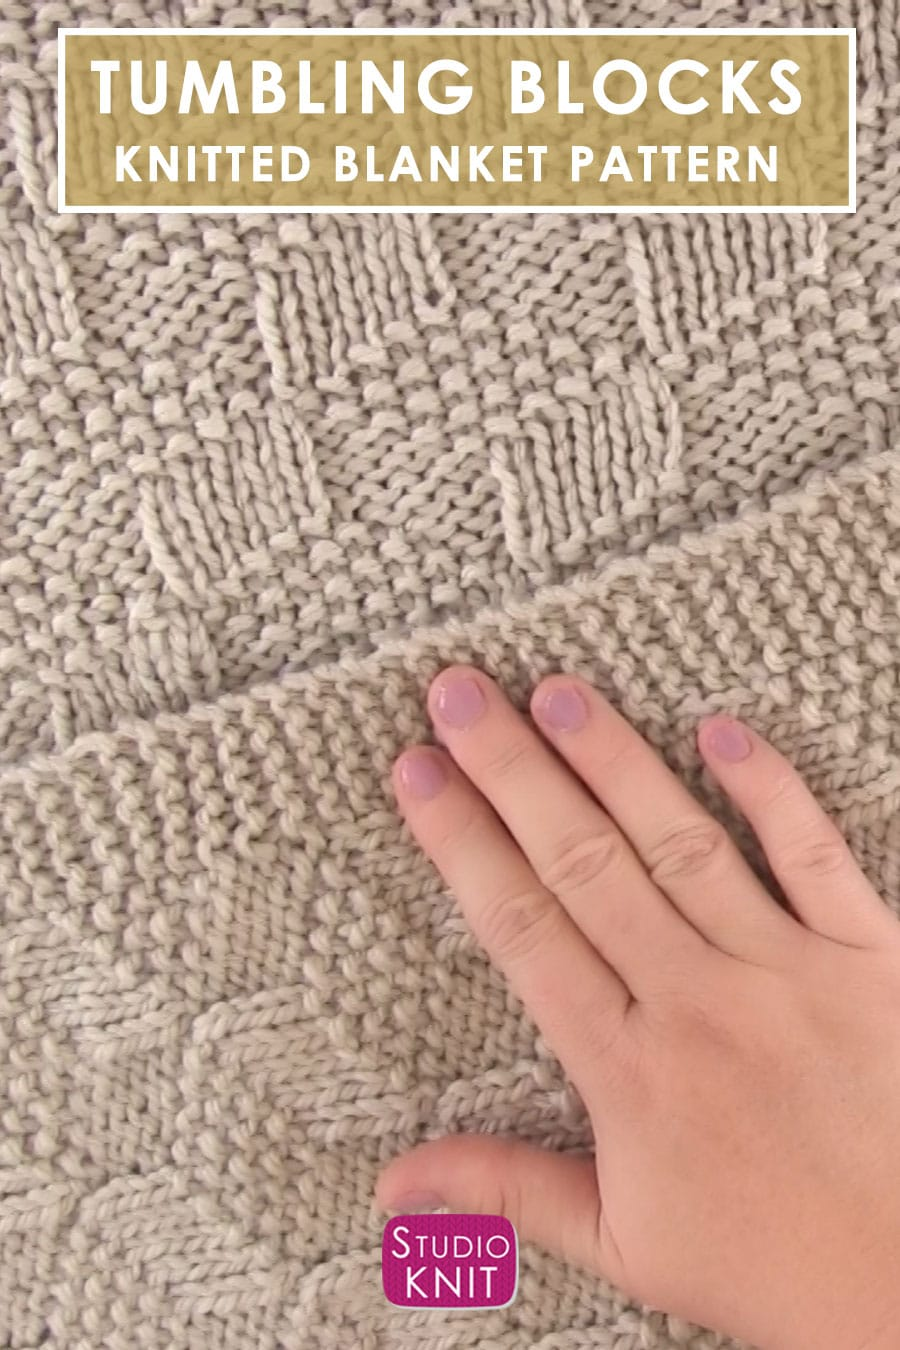 Knitted Blanket in Tumbling Moss Blocks Stitch draped with hand